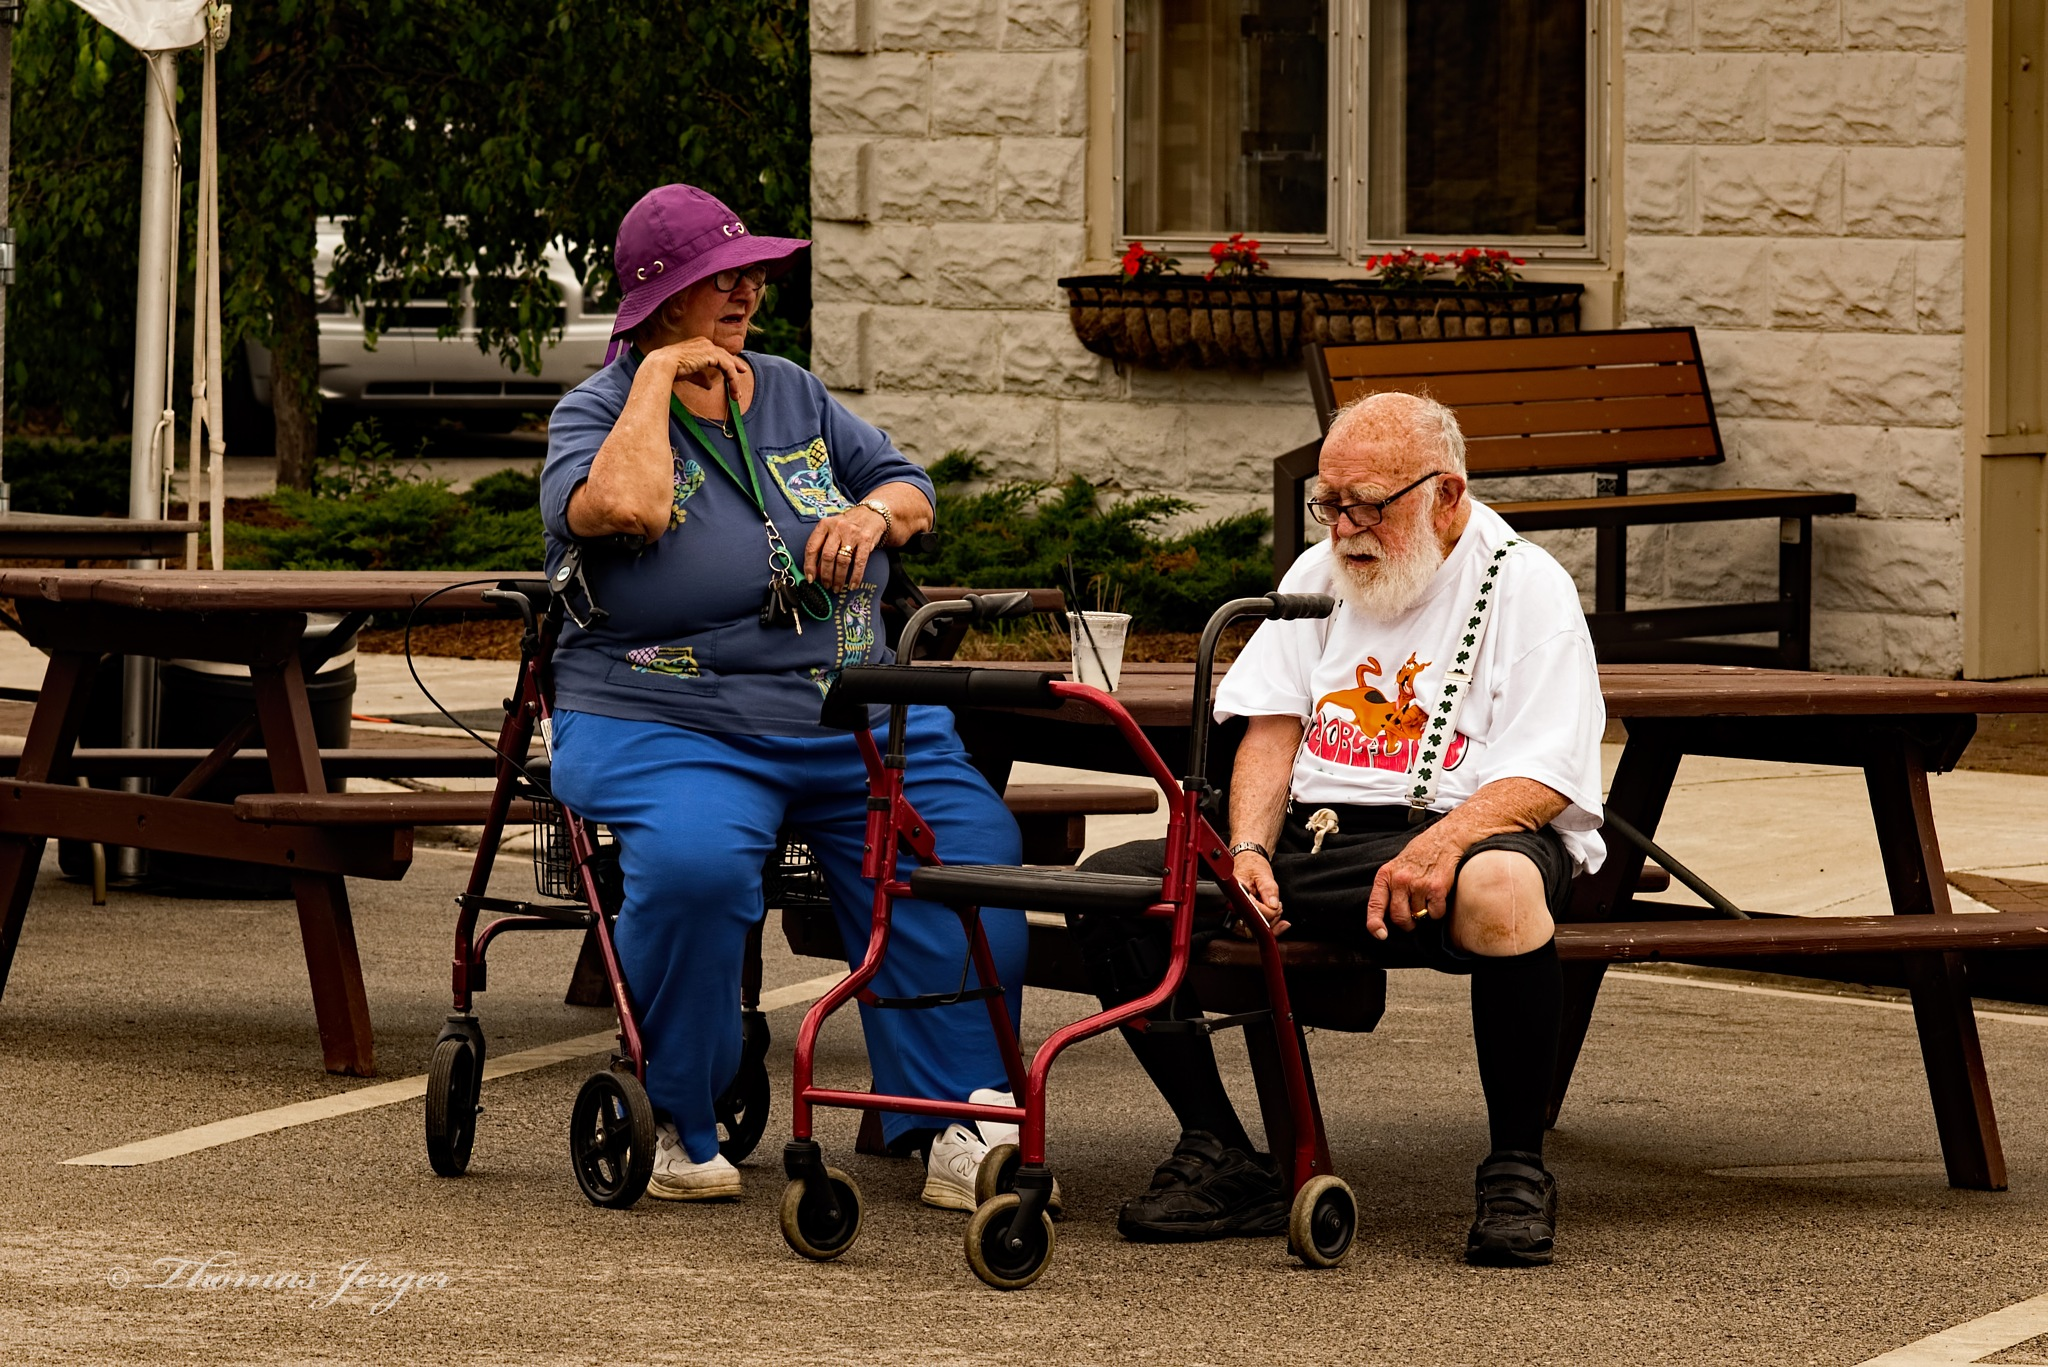 Older Couple at the Greet and Meet by ThomasJerger